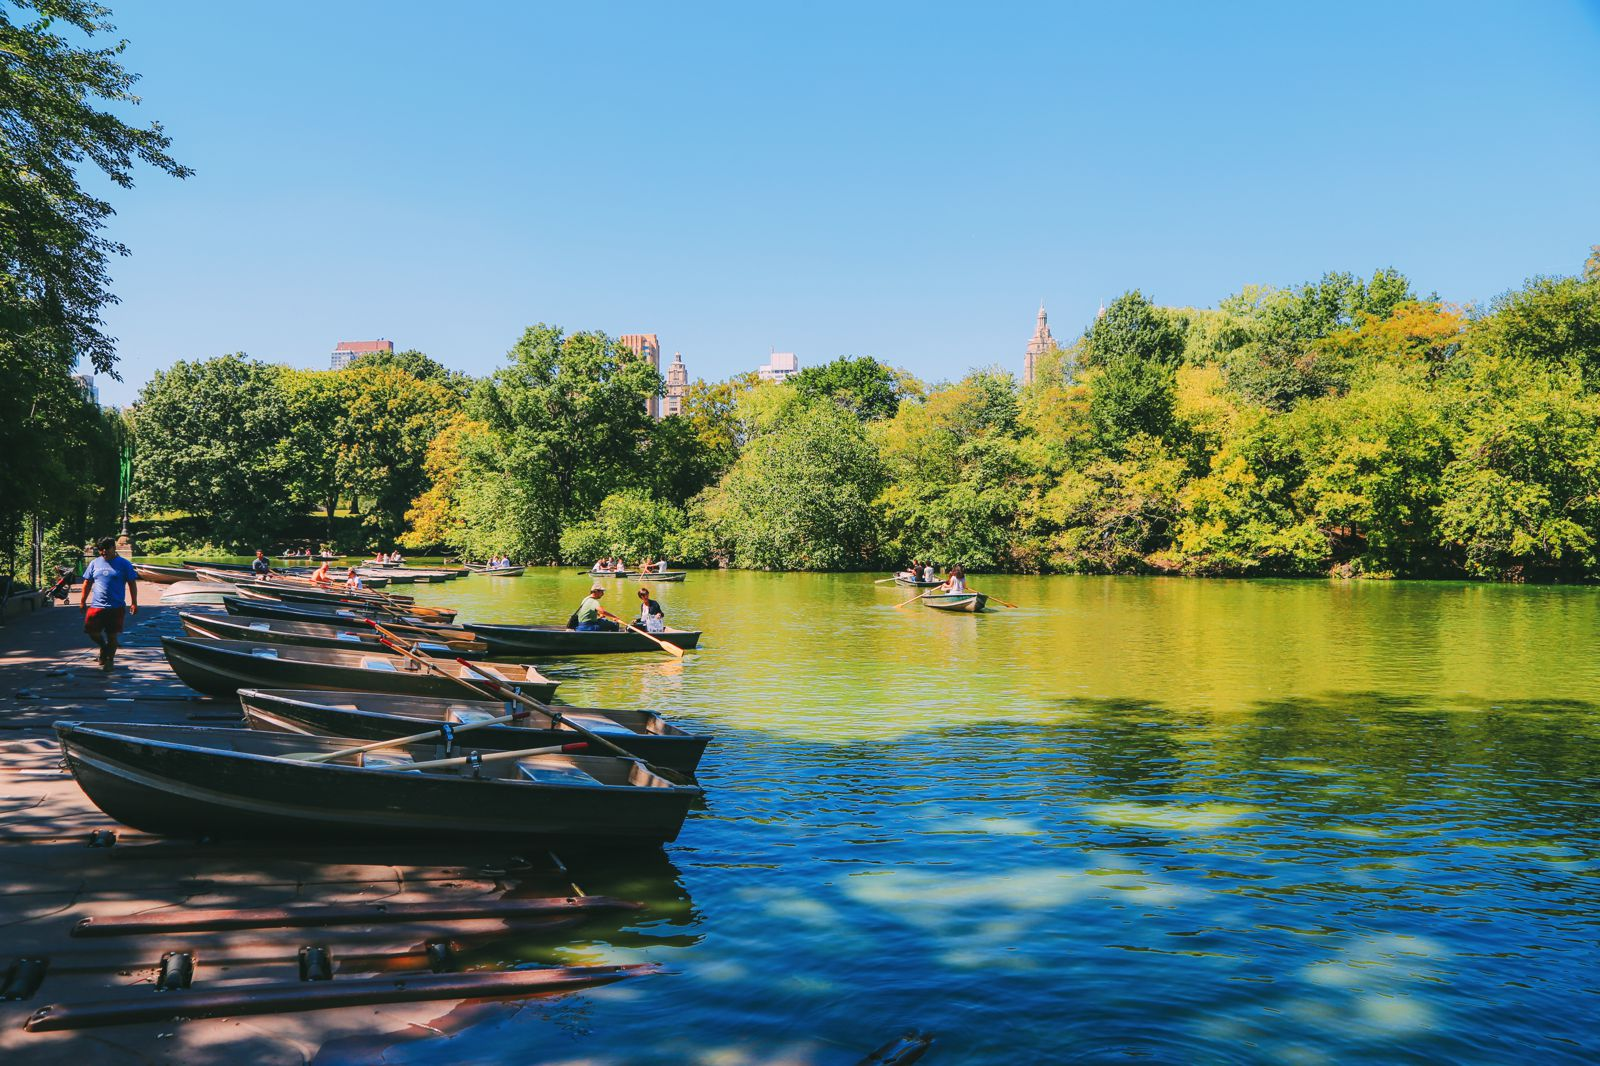 Boating at the Loeb Boathouse in Central Park, New York City (2)